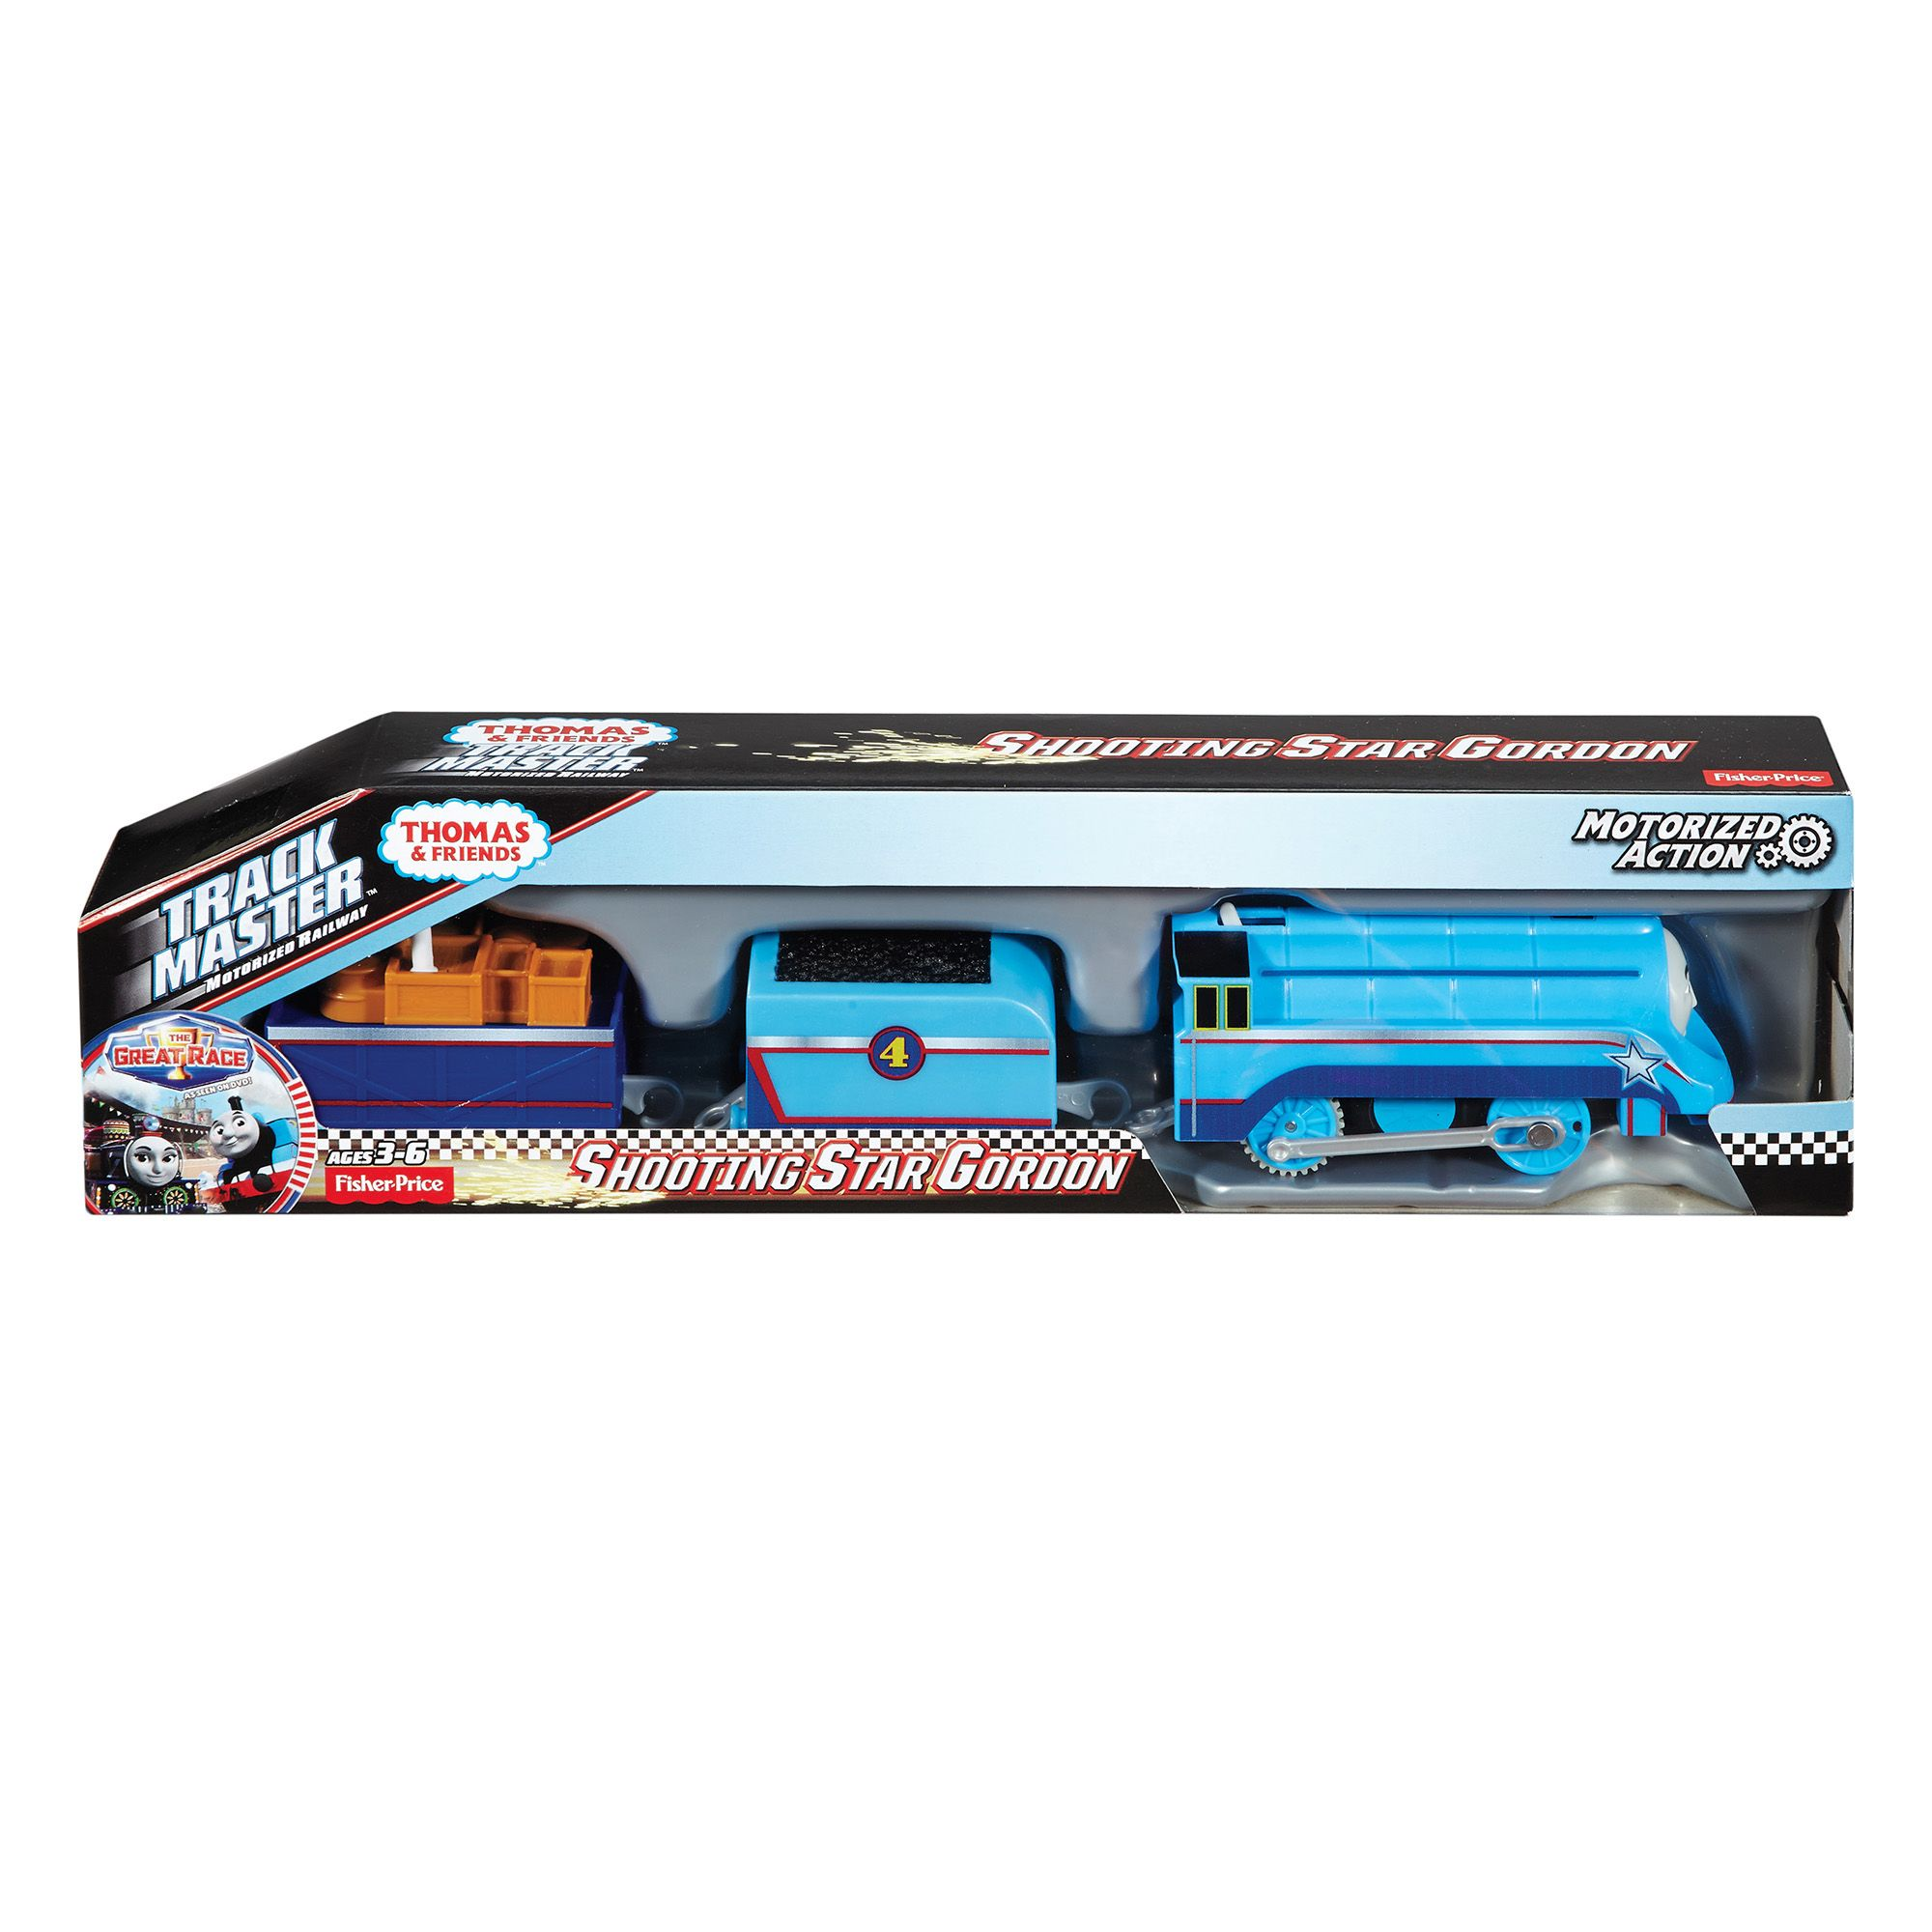 Thomas & Friends Trackmaster Shooting Star Gordon